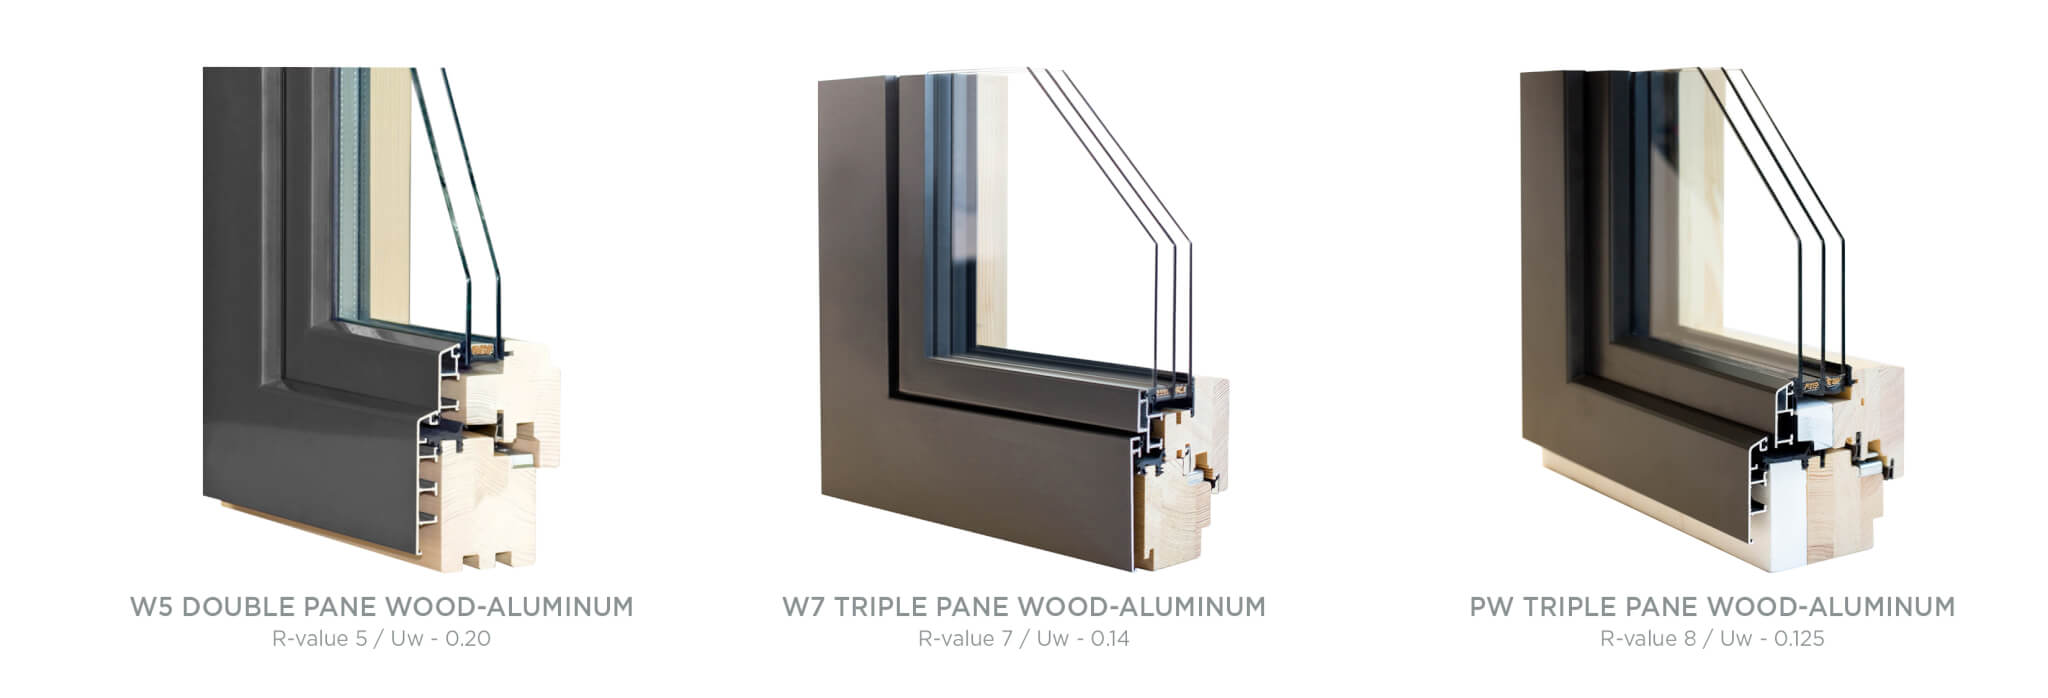 passive house windows, passive house, wood aluminum windows, european windows, triple pane windows, window design,